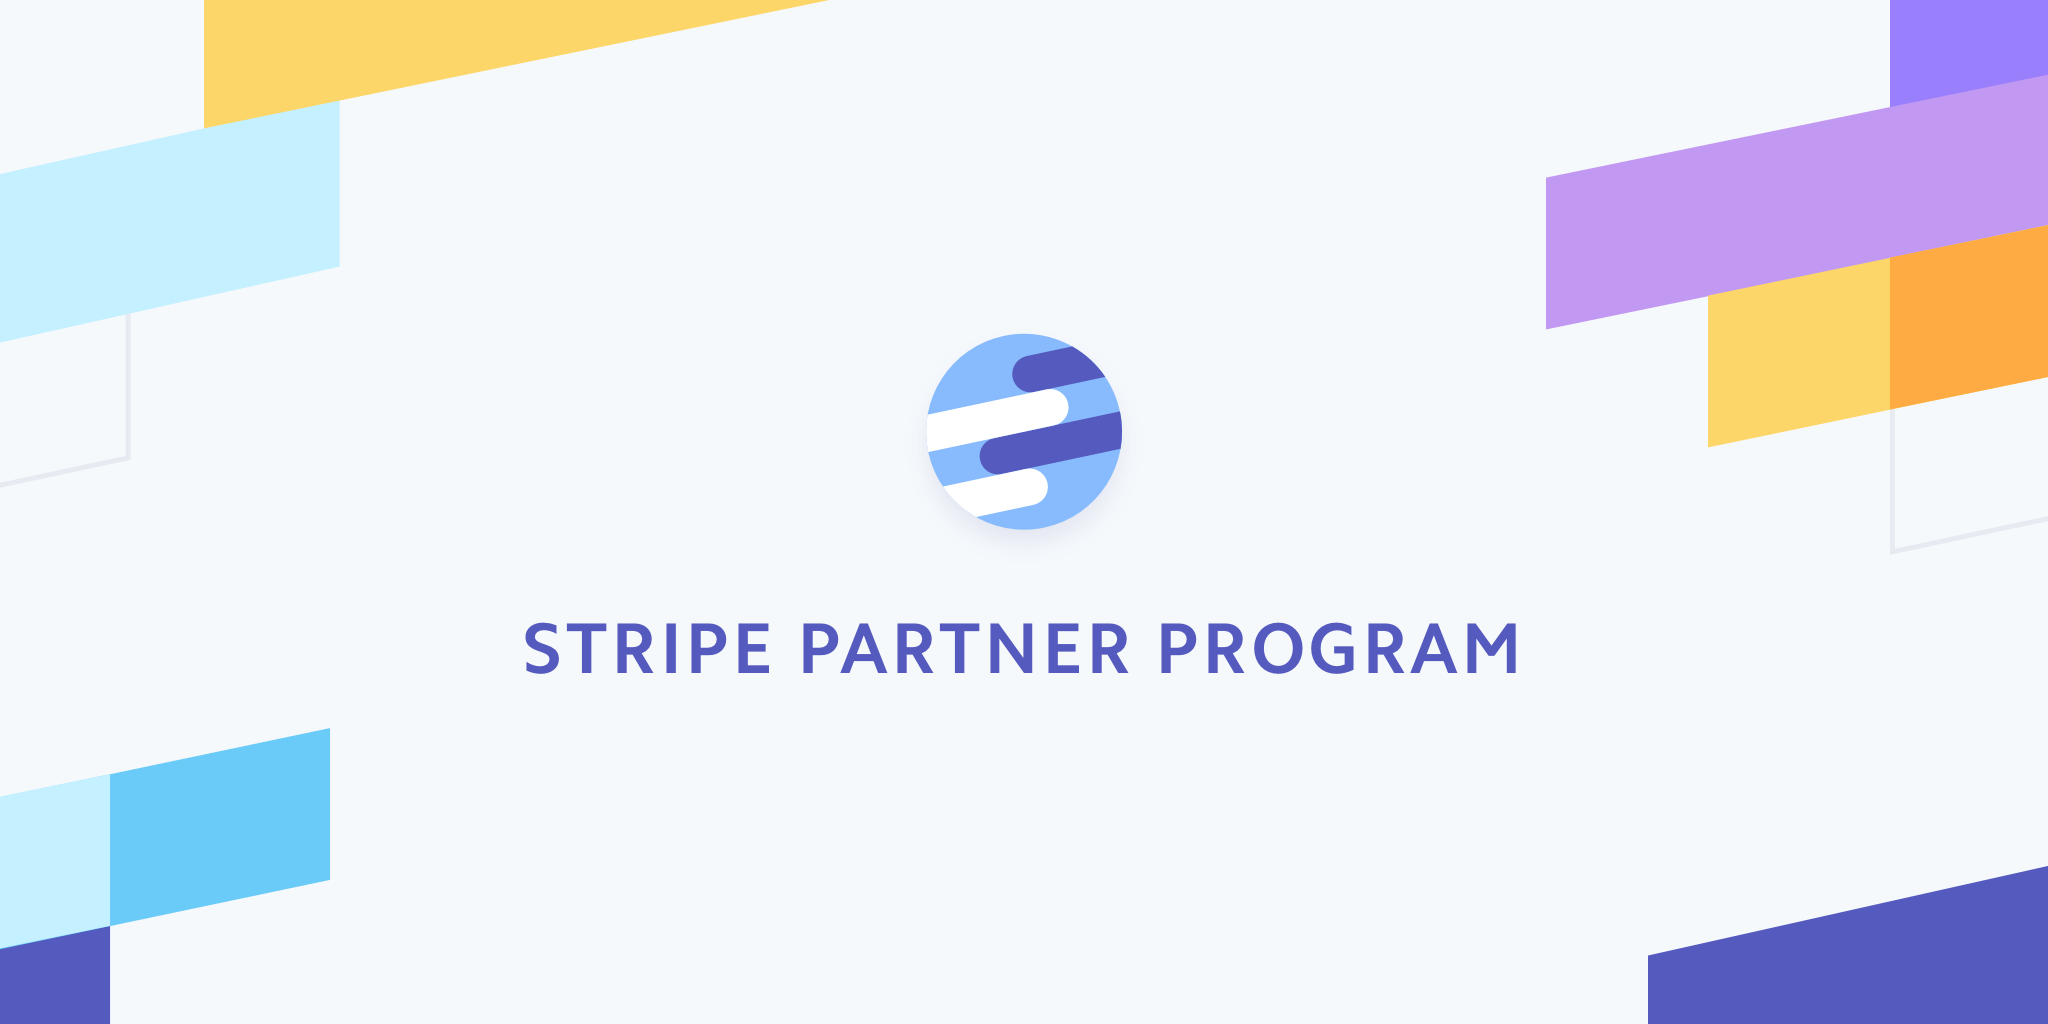 Stripe Partner Program